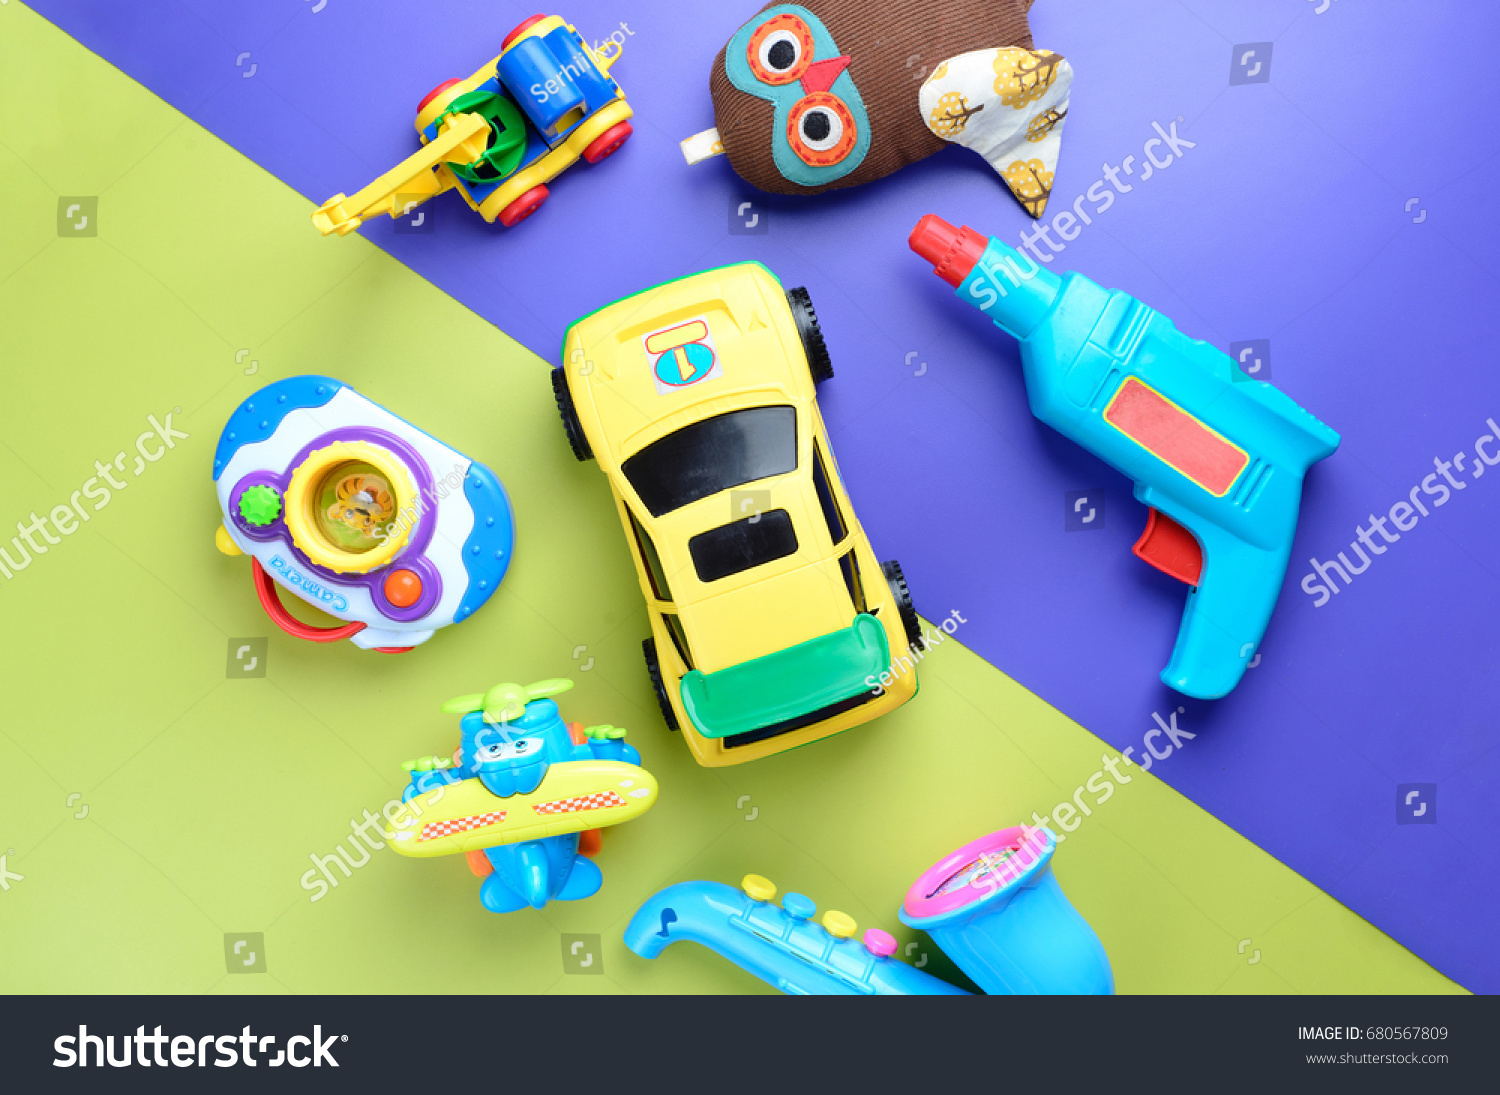 Toys For Boys To Color : Boys toys on color background top stock photo edit now 680567809